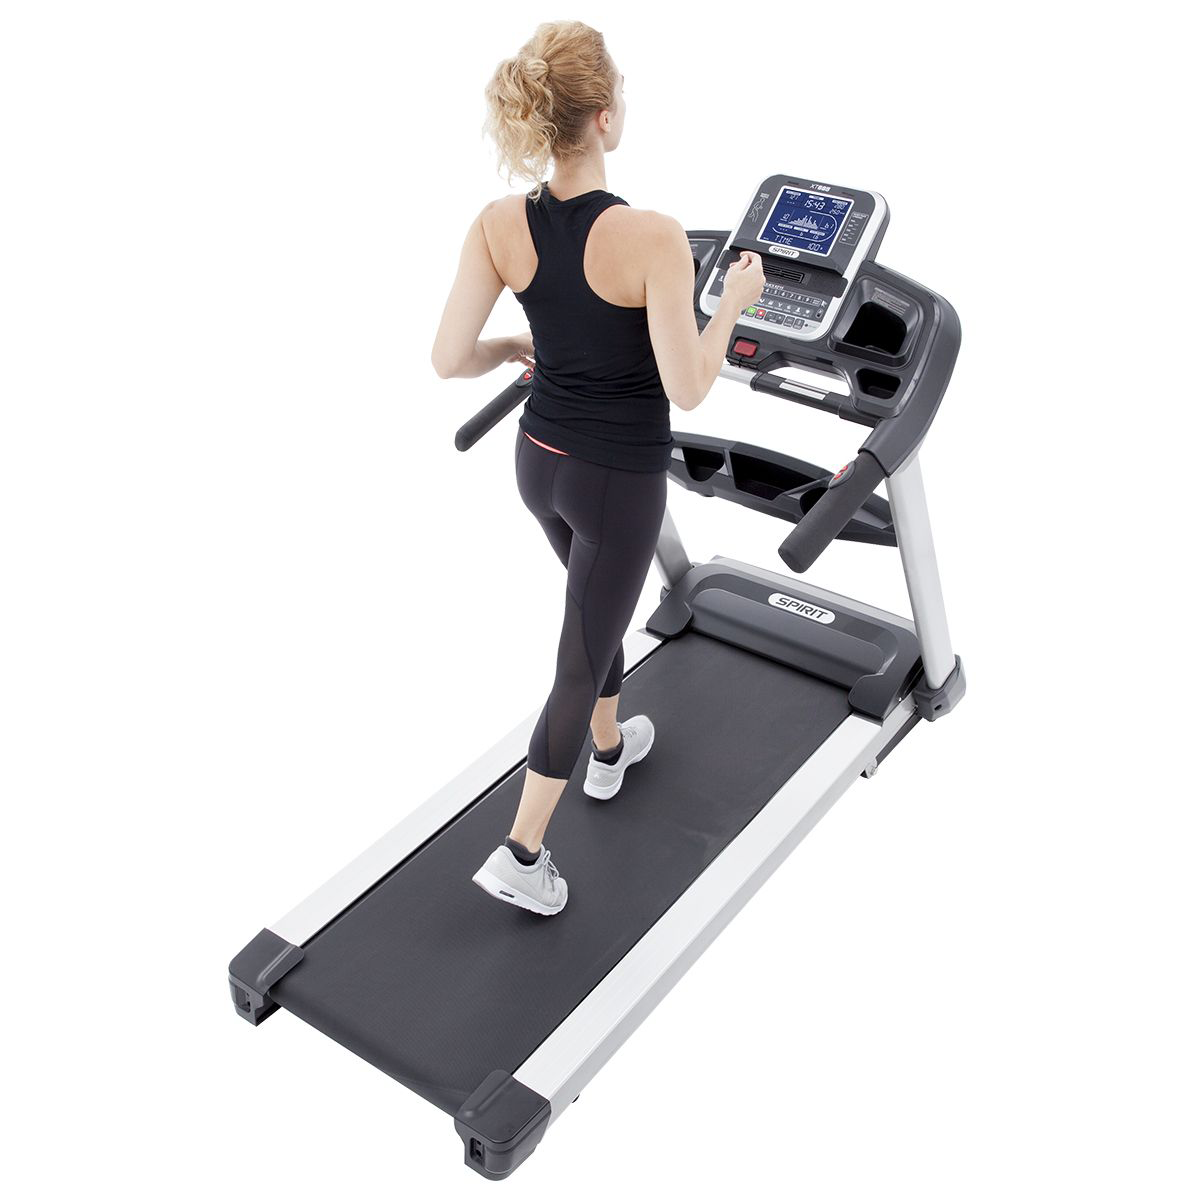 Right side/back/overhead view of the Spirit Fitness XT685 treadmill featuring a female model wearing black workout top and leggings